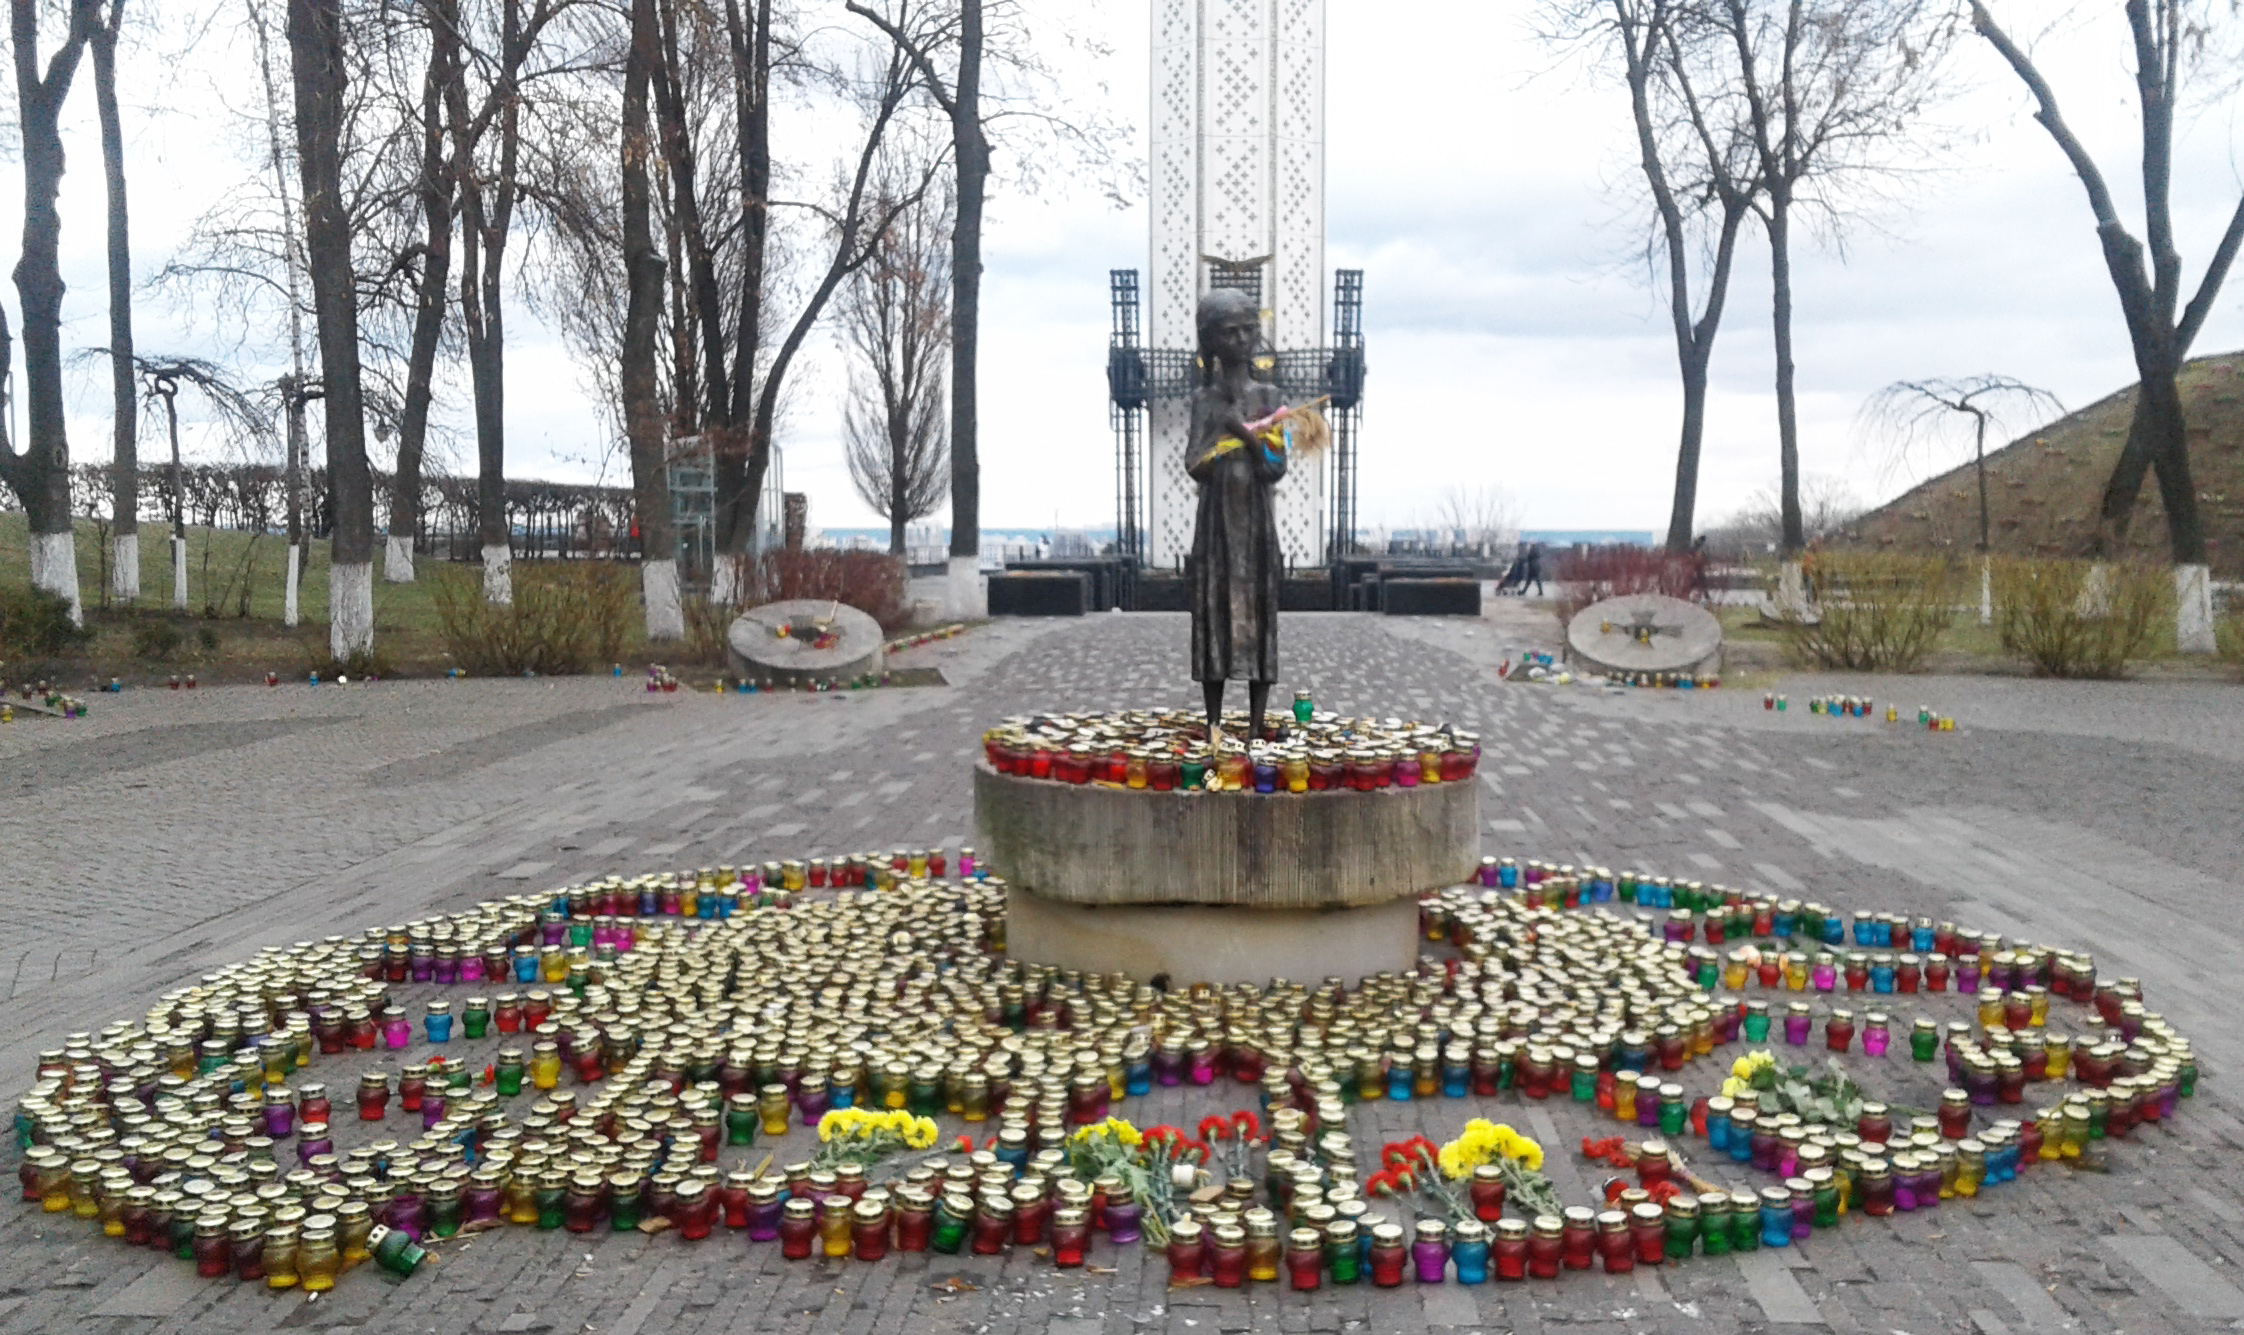 Starvation monument in Kyiv. Memorial candle. Erected 2007